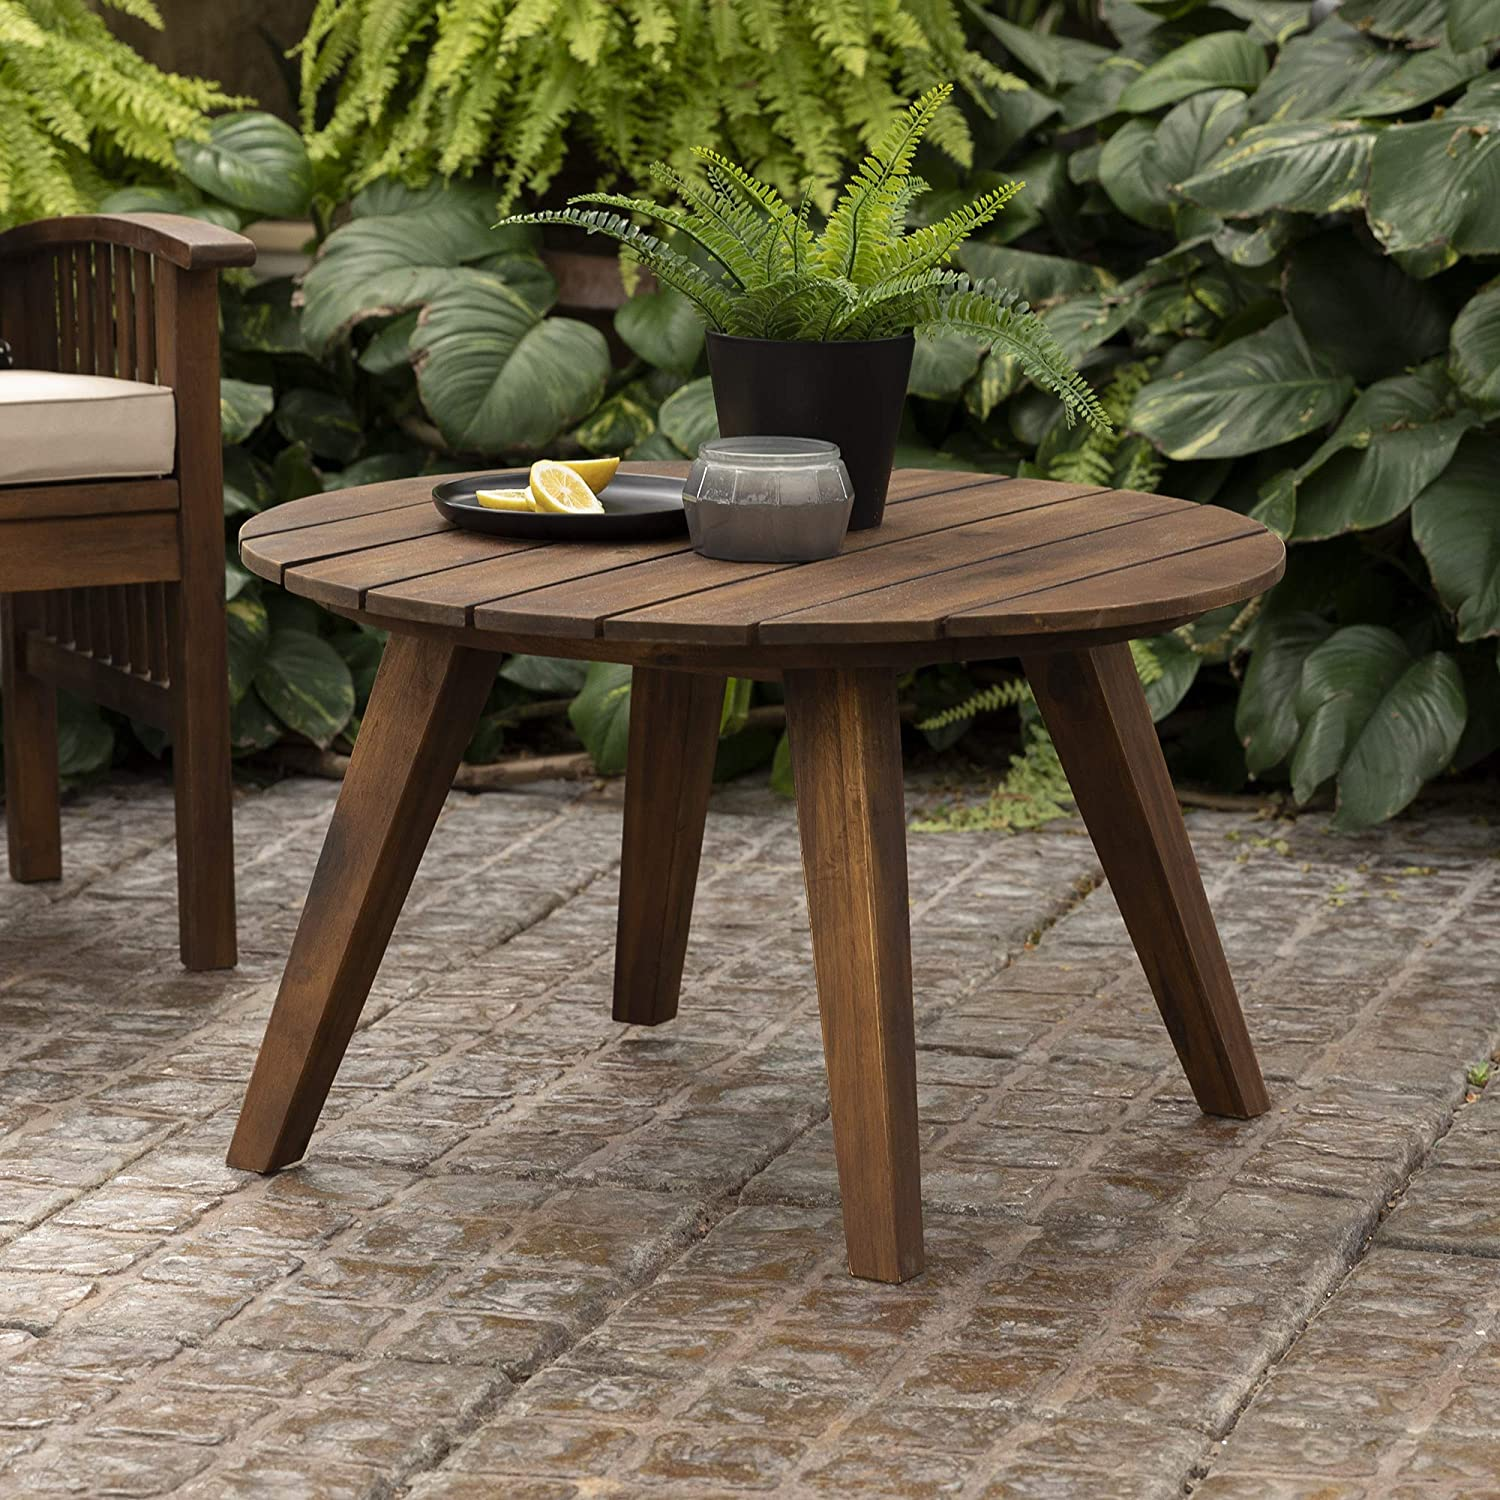 Walker Edison Outdoor Patio Wood Round Coffee Table All Weather Backyard Conversation Garden Poolside Balcony, 30 Inch, Dark Brown